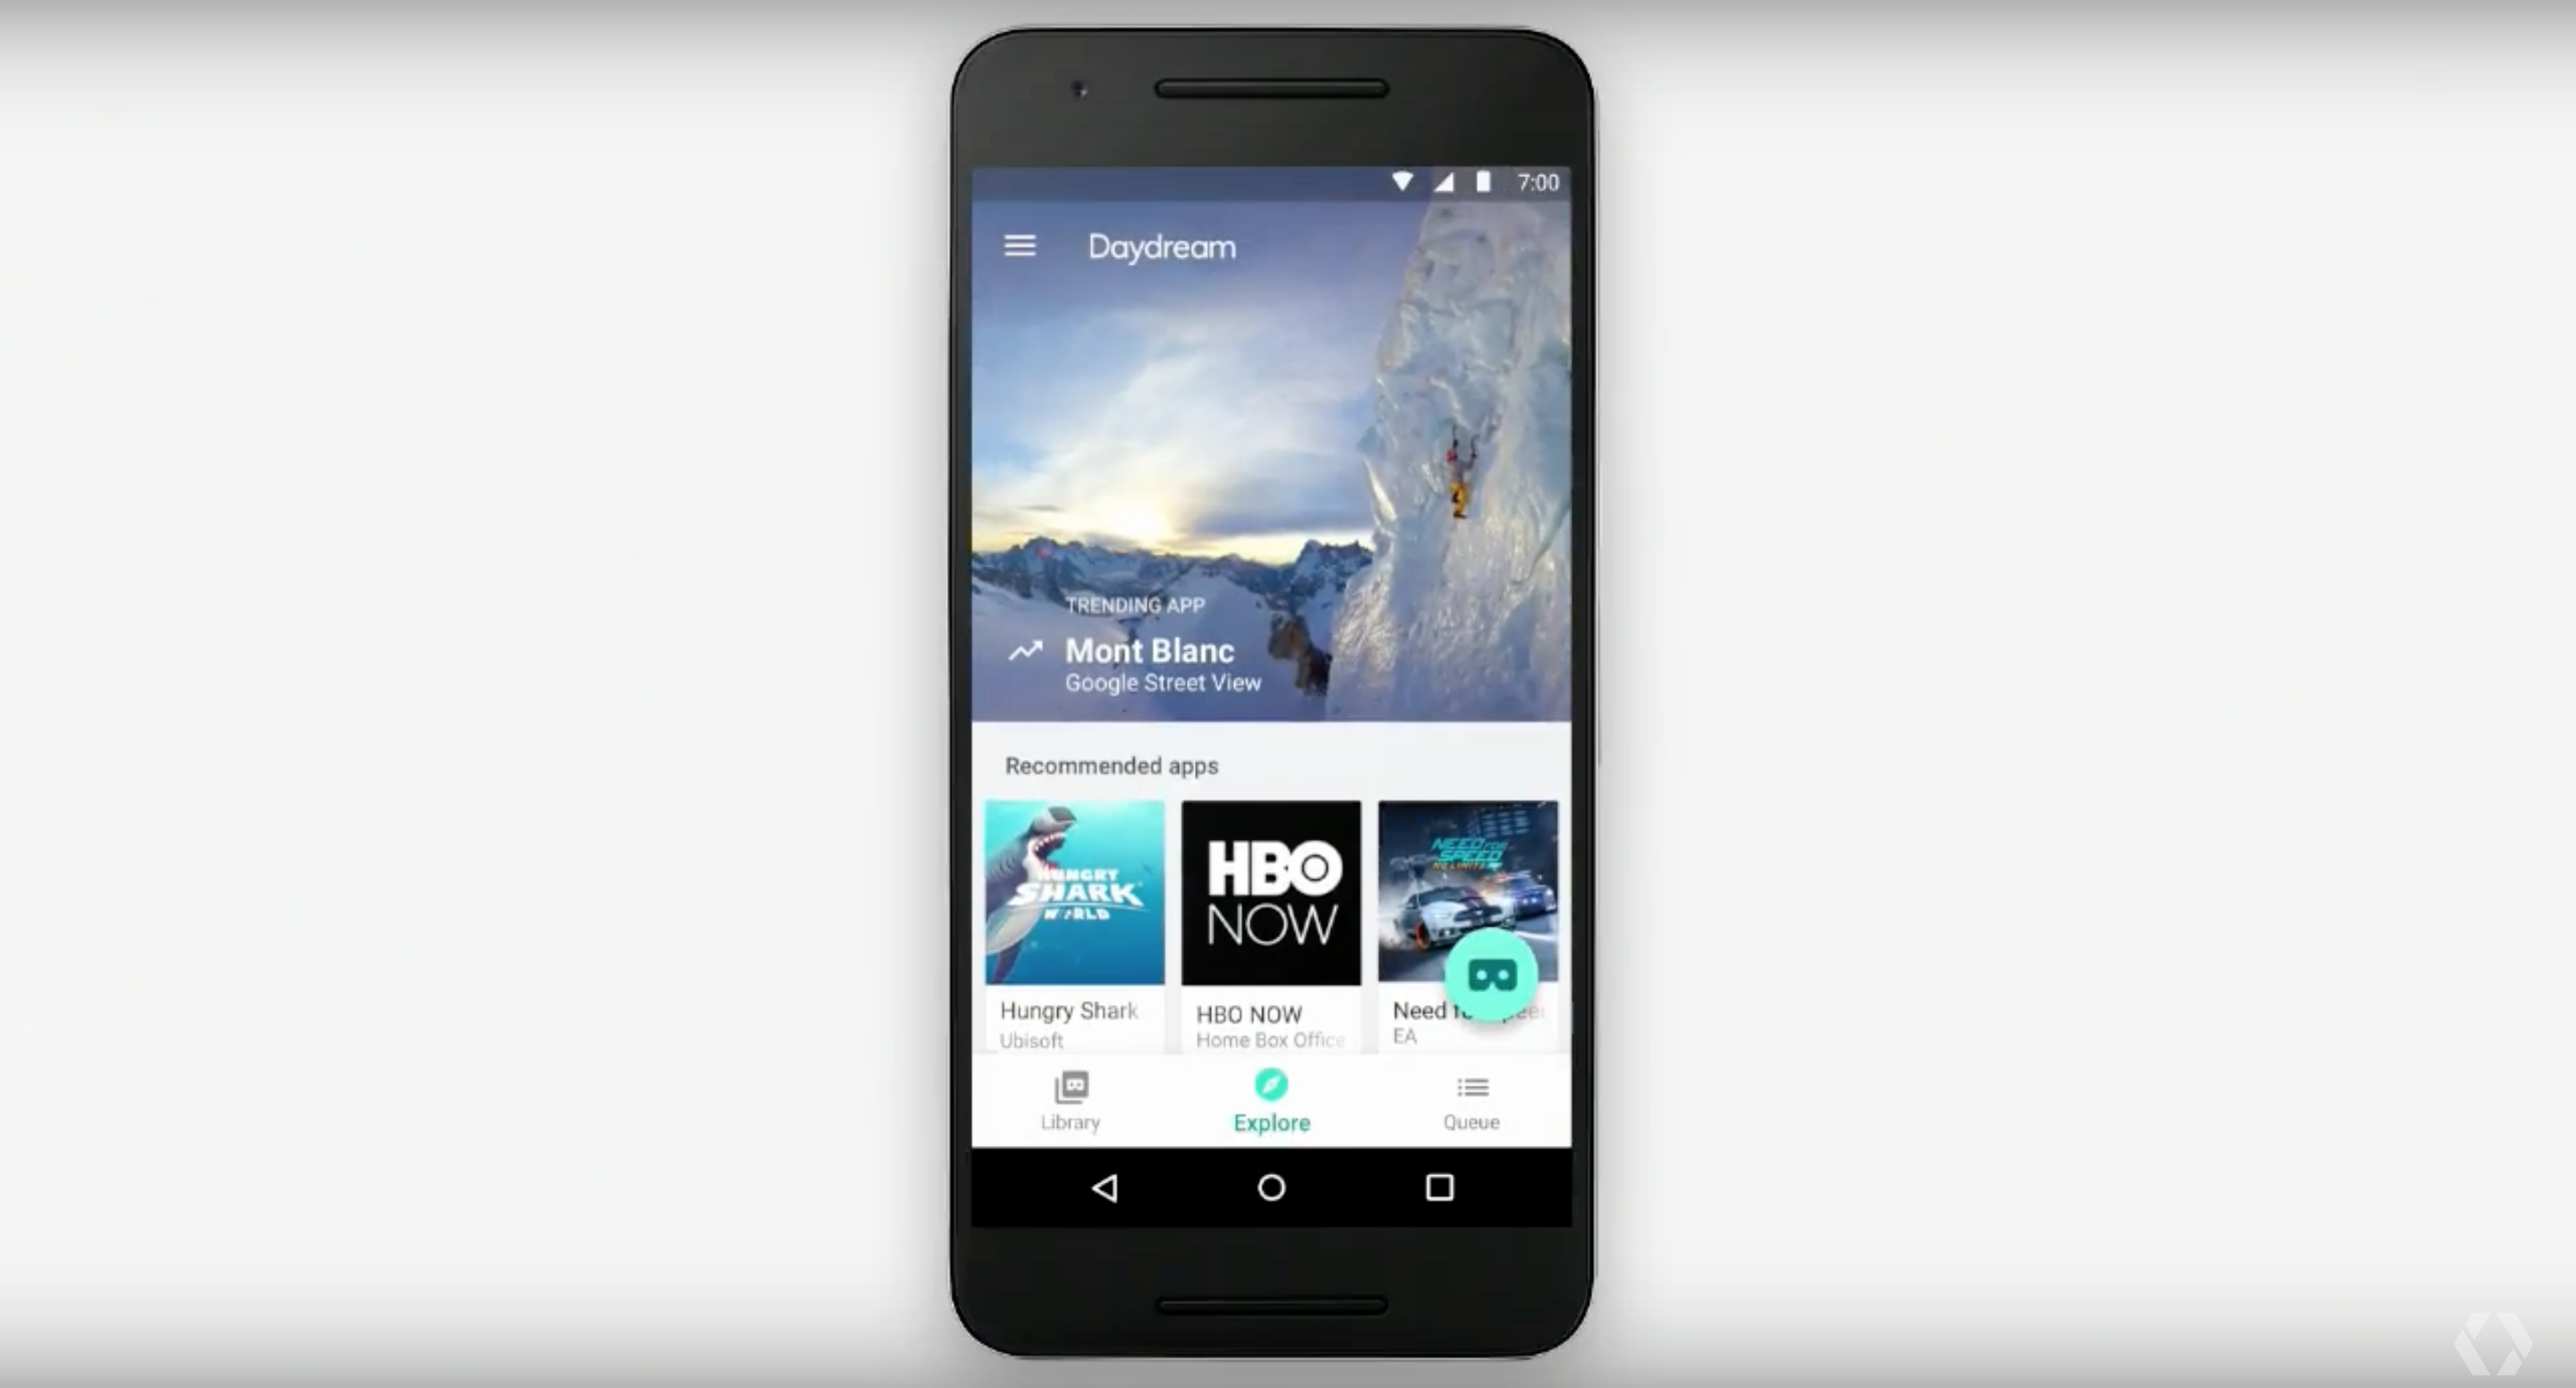 Google's Daydream VR app for Android.